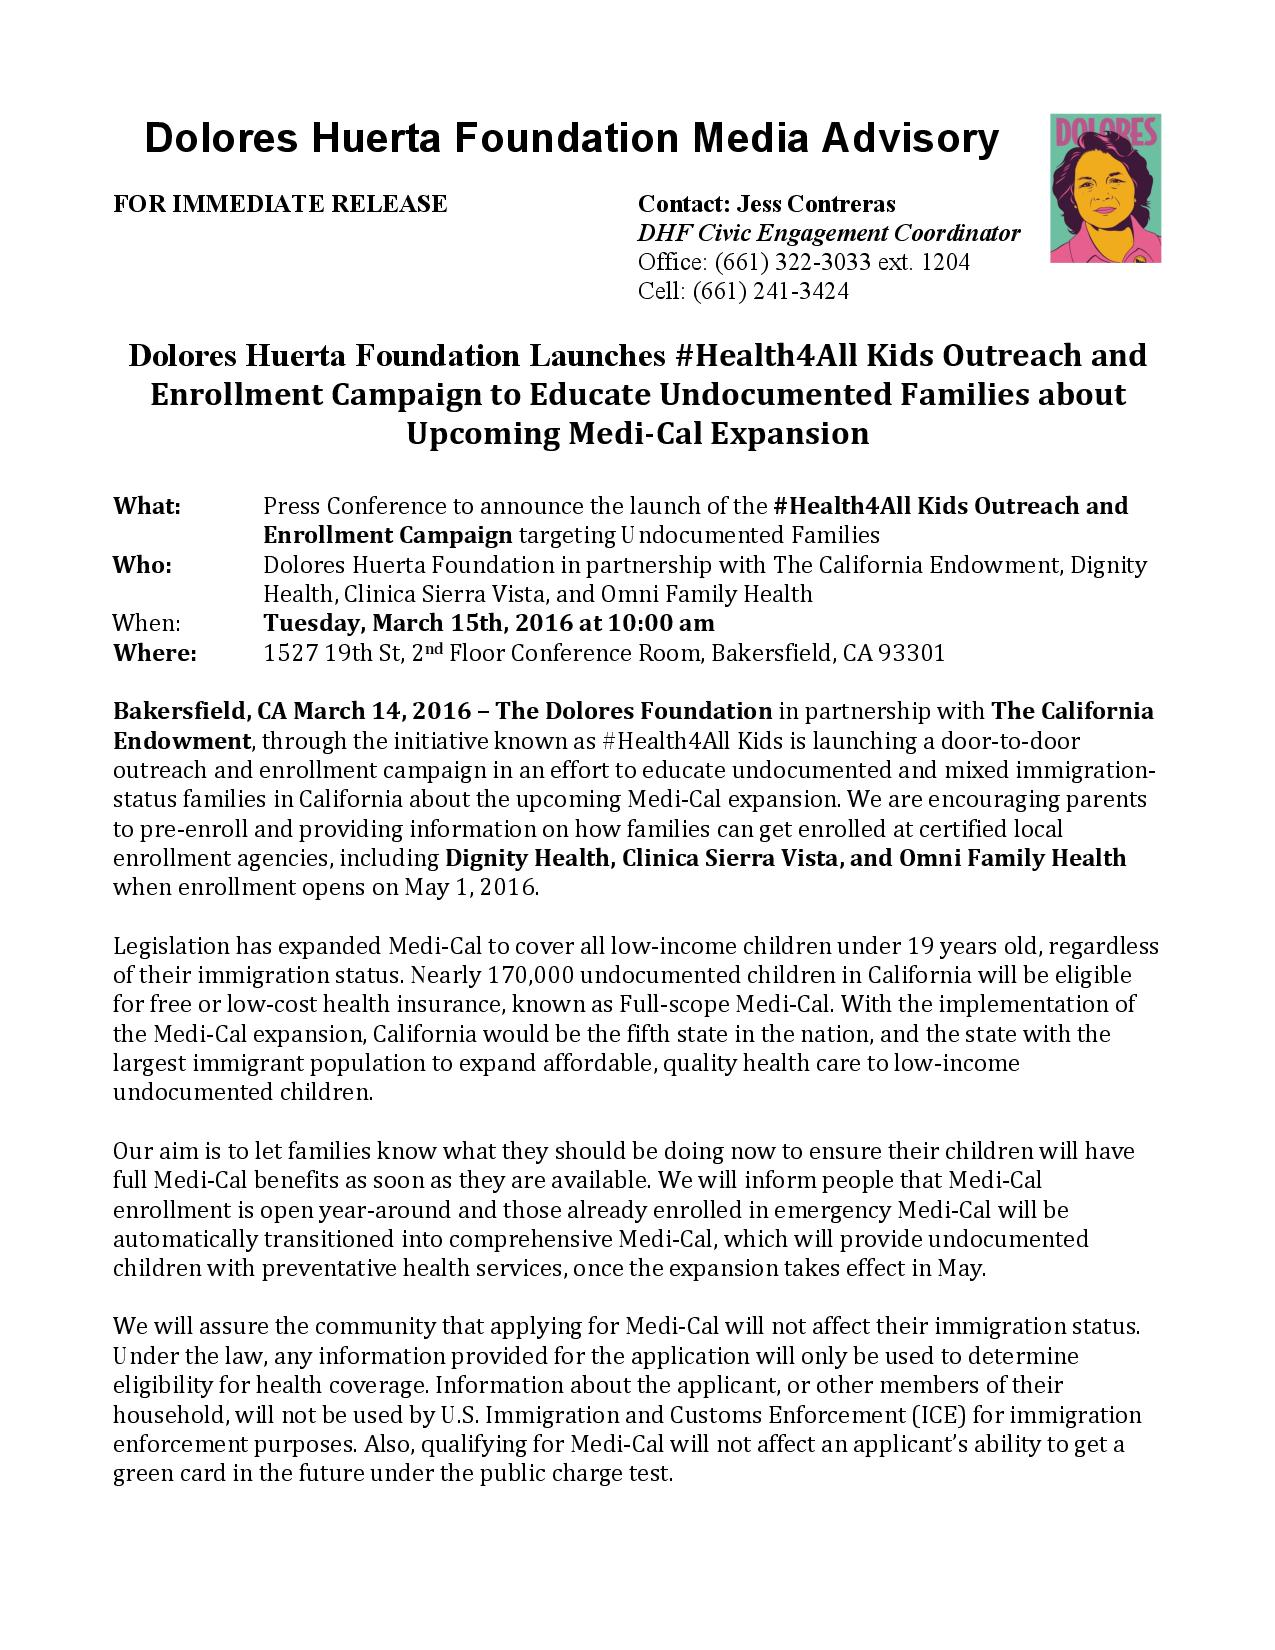 media-advisory-health4all-kids-launch-press-conference-3-15-16-page-001